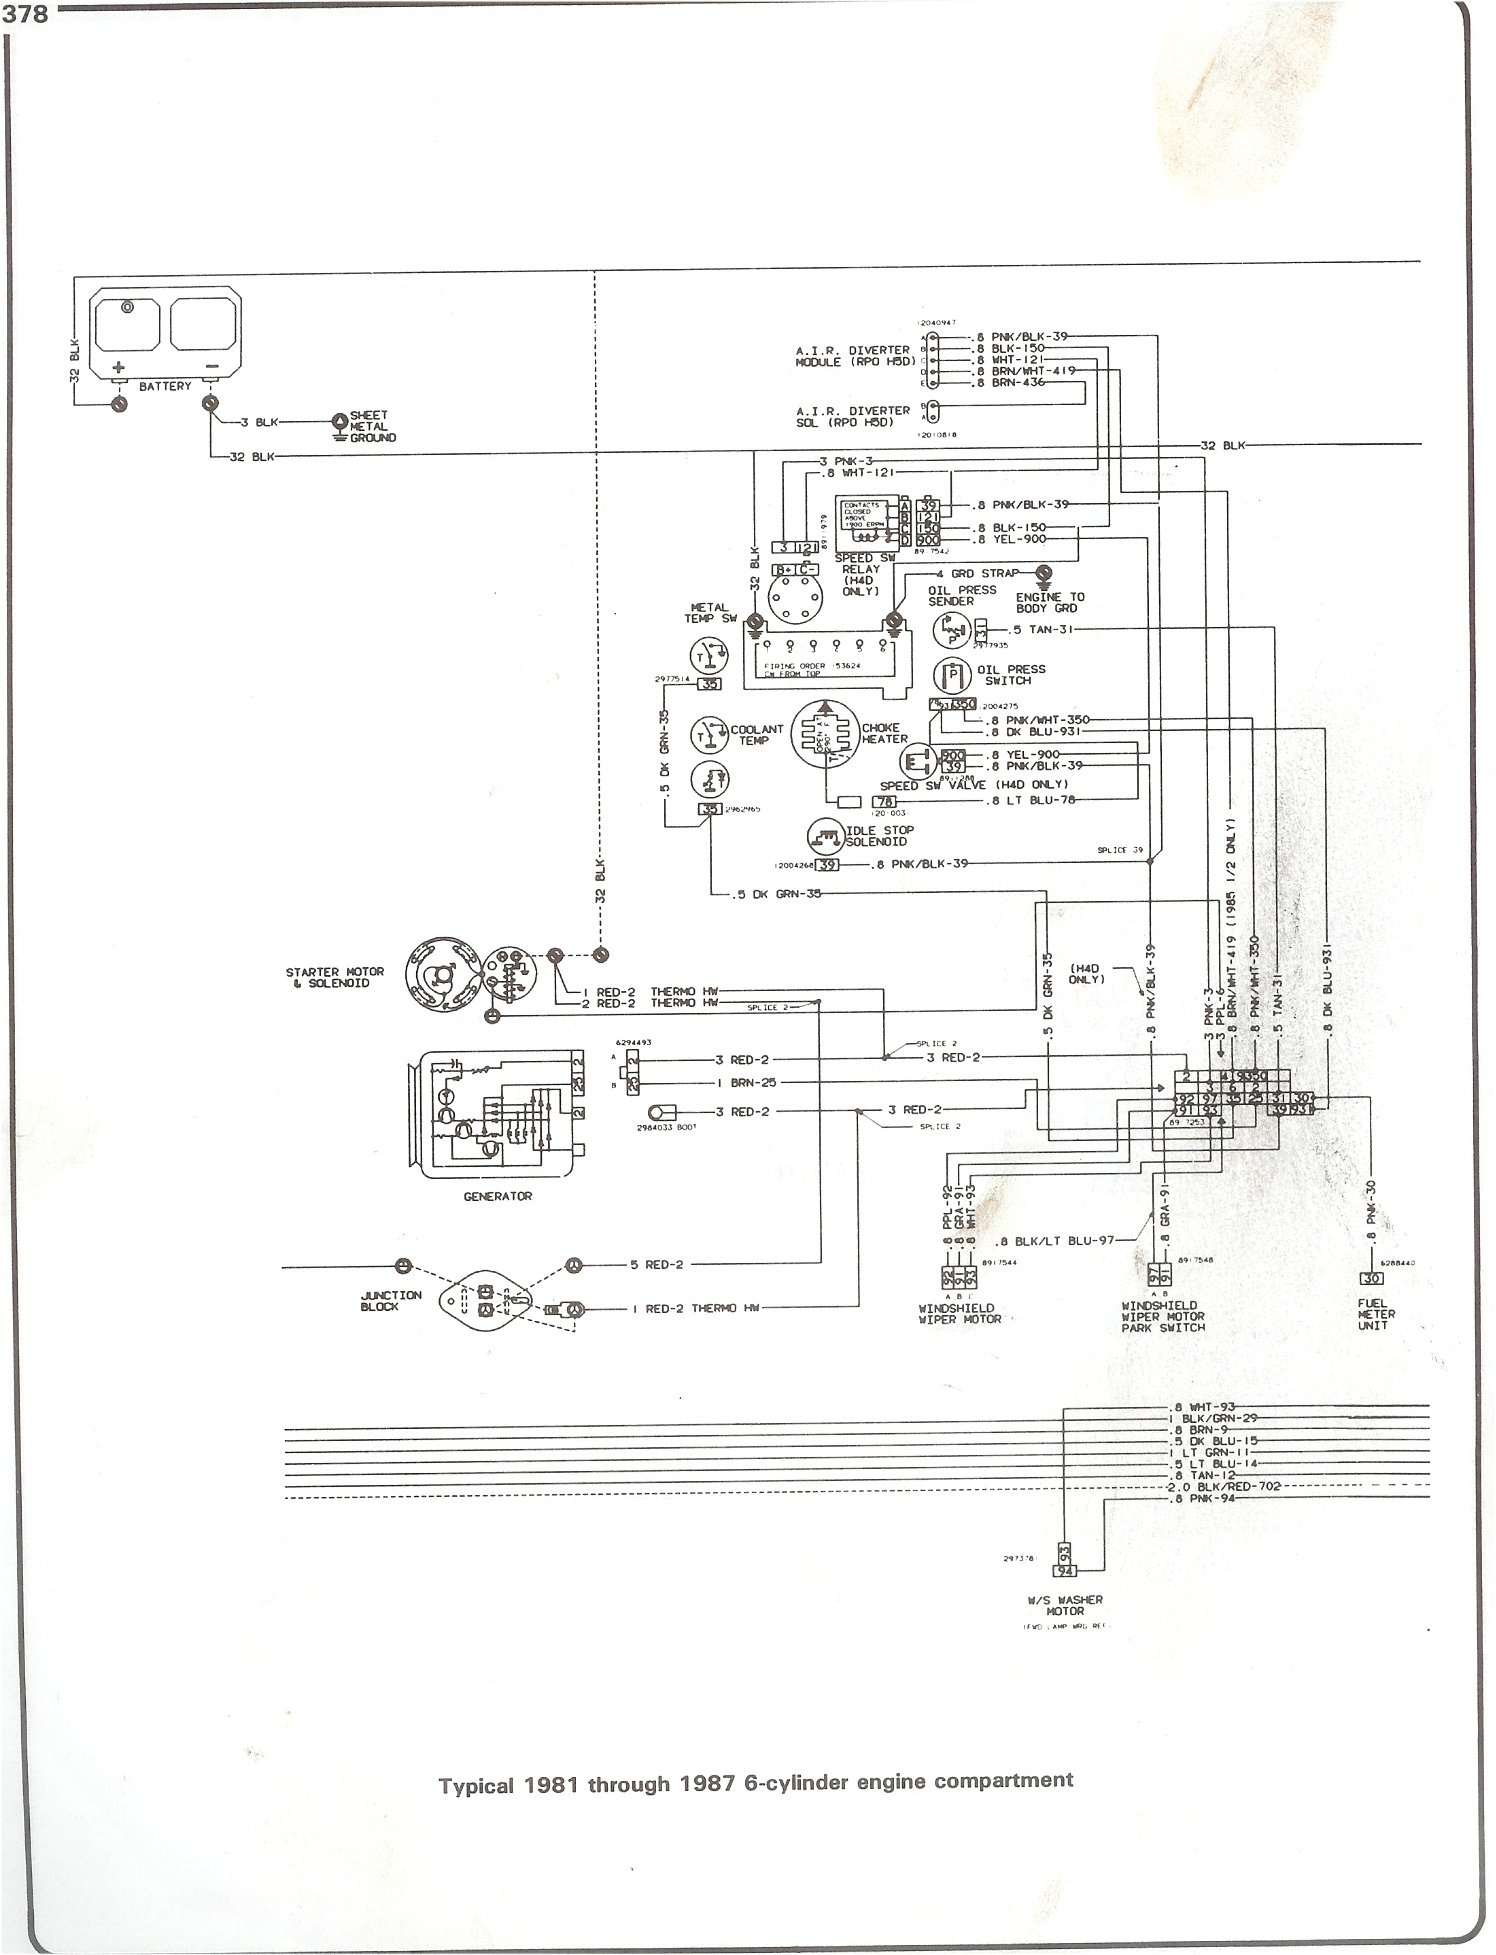 Plete 7387 Wiring Diagrams. 8187 I6 Engine Partment. Chevrolet. 1978 Chevy Scottsdale Wiring Diagram At Scoala.co